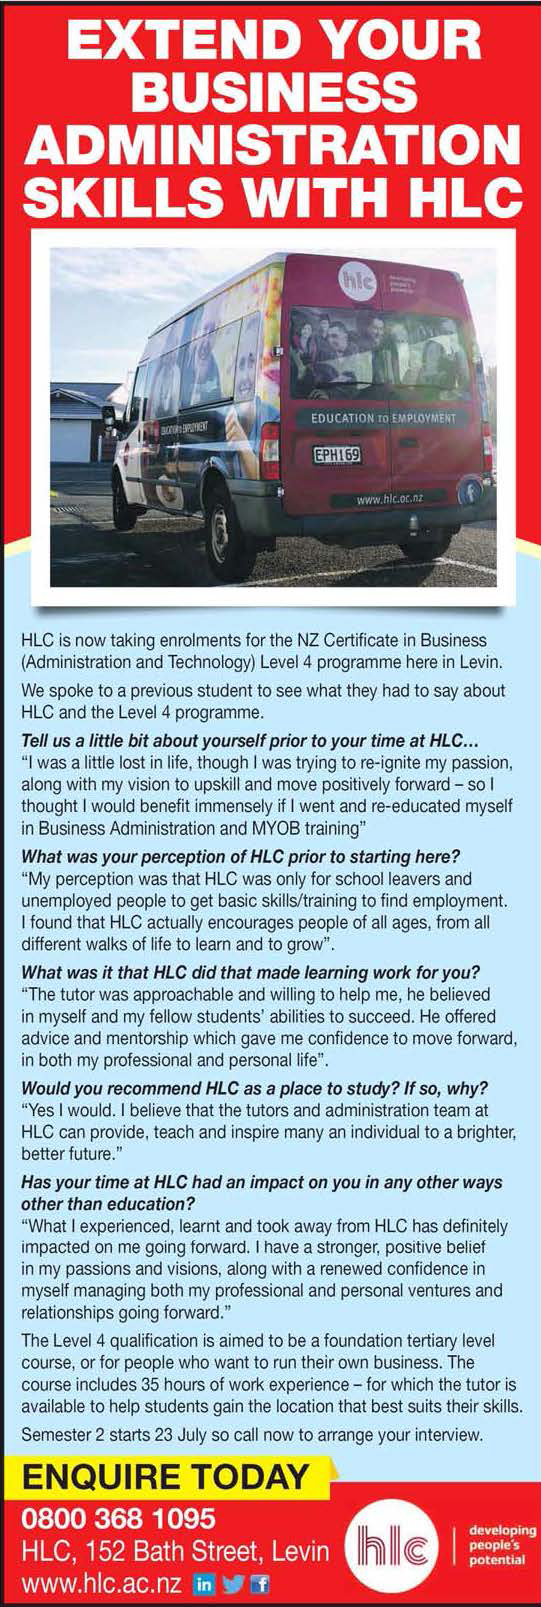 Extend your business administration skills with HLC